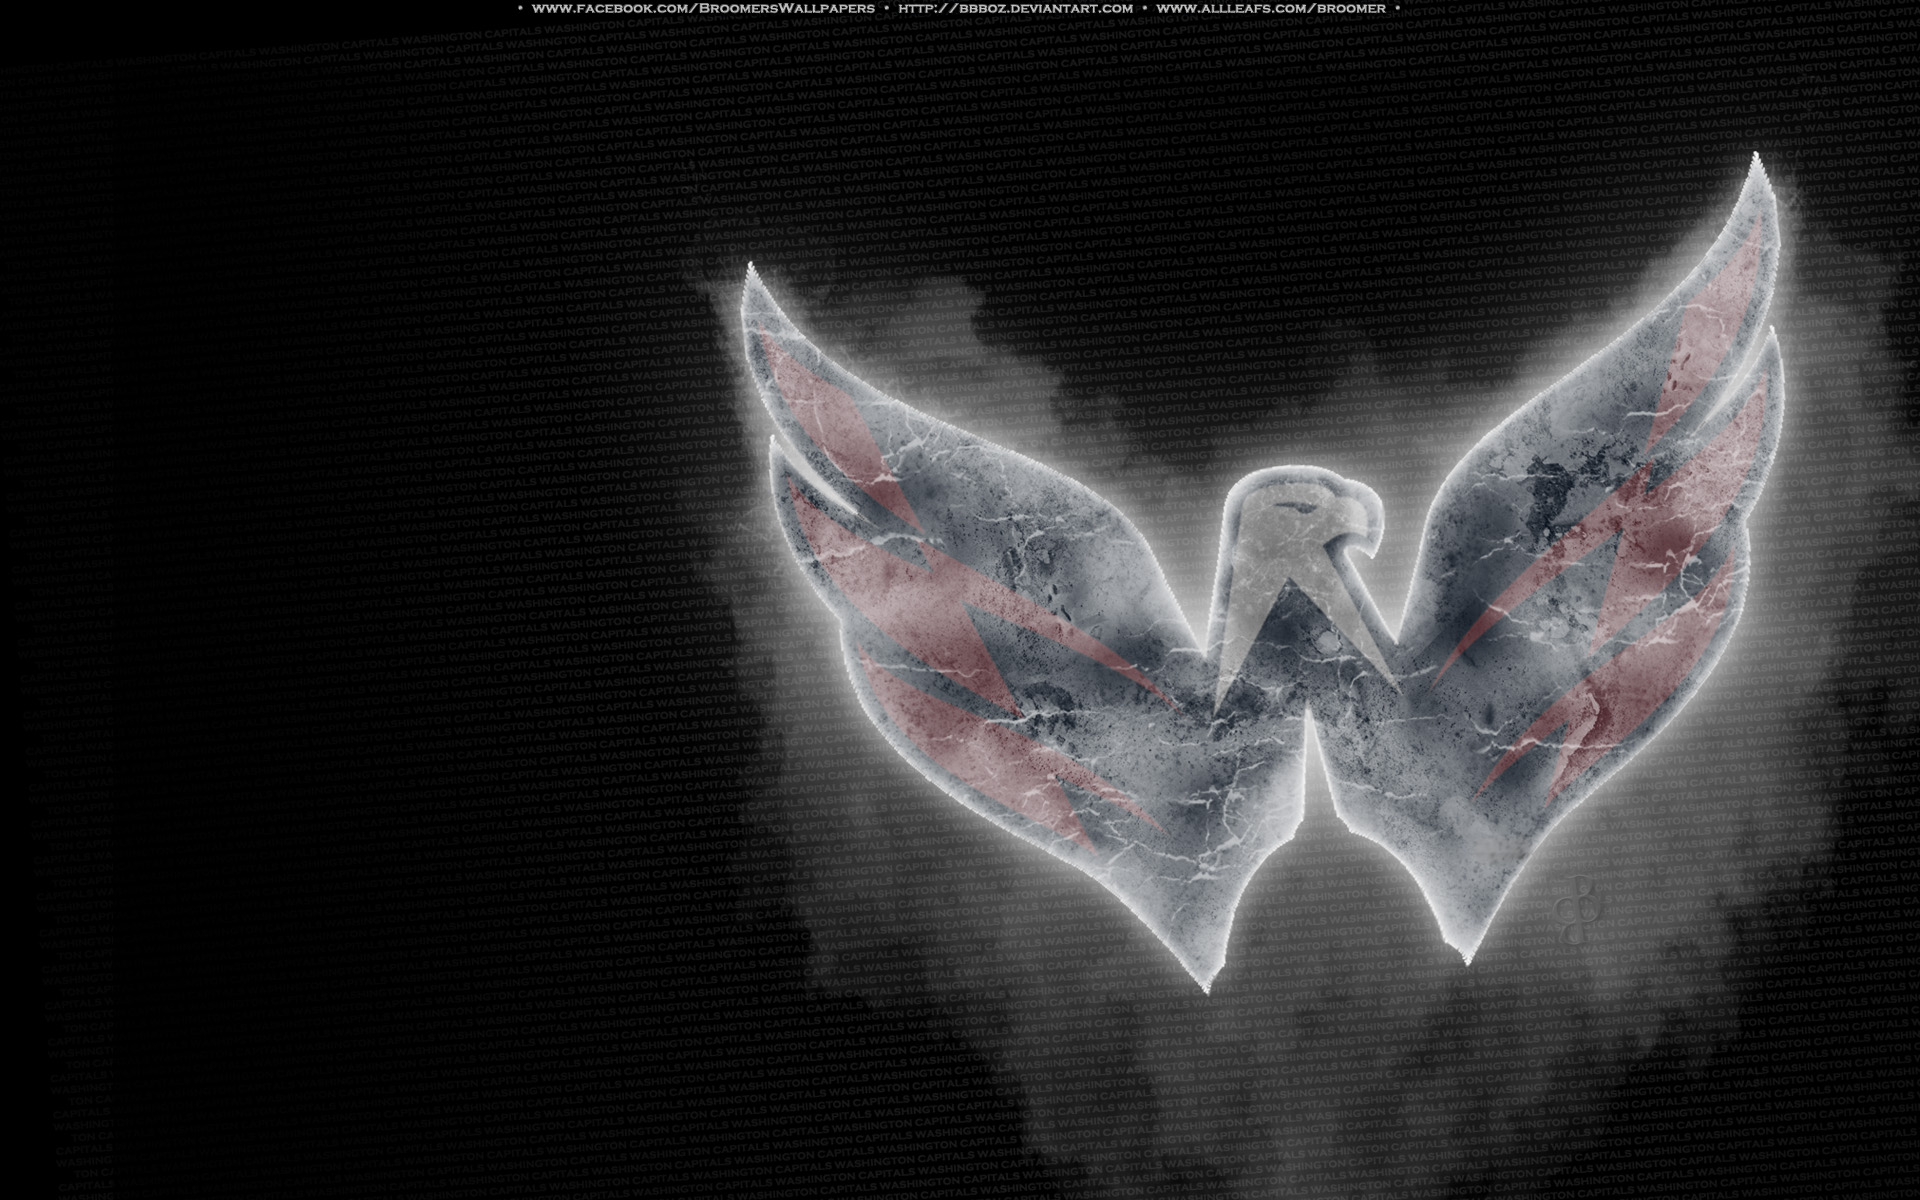 Washington Capitals Ice by bbboz 1920 x 1200 1920x1200